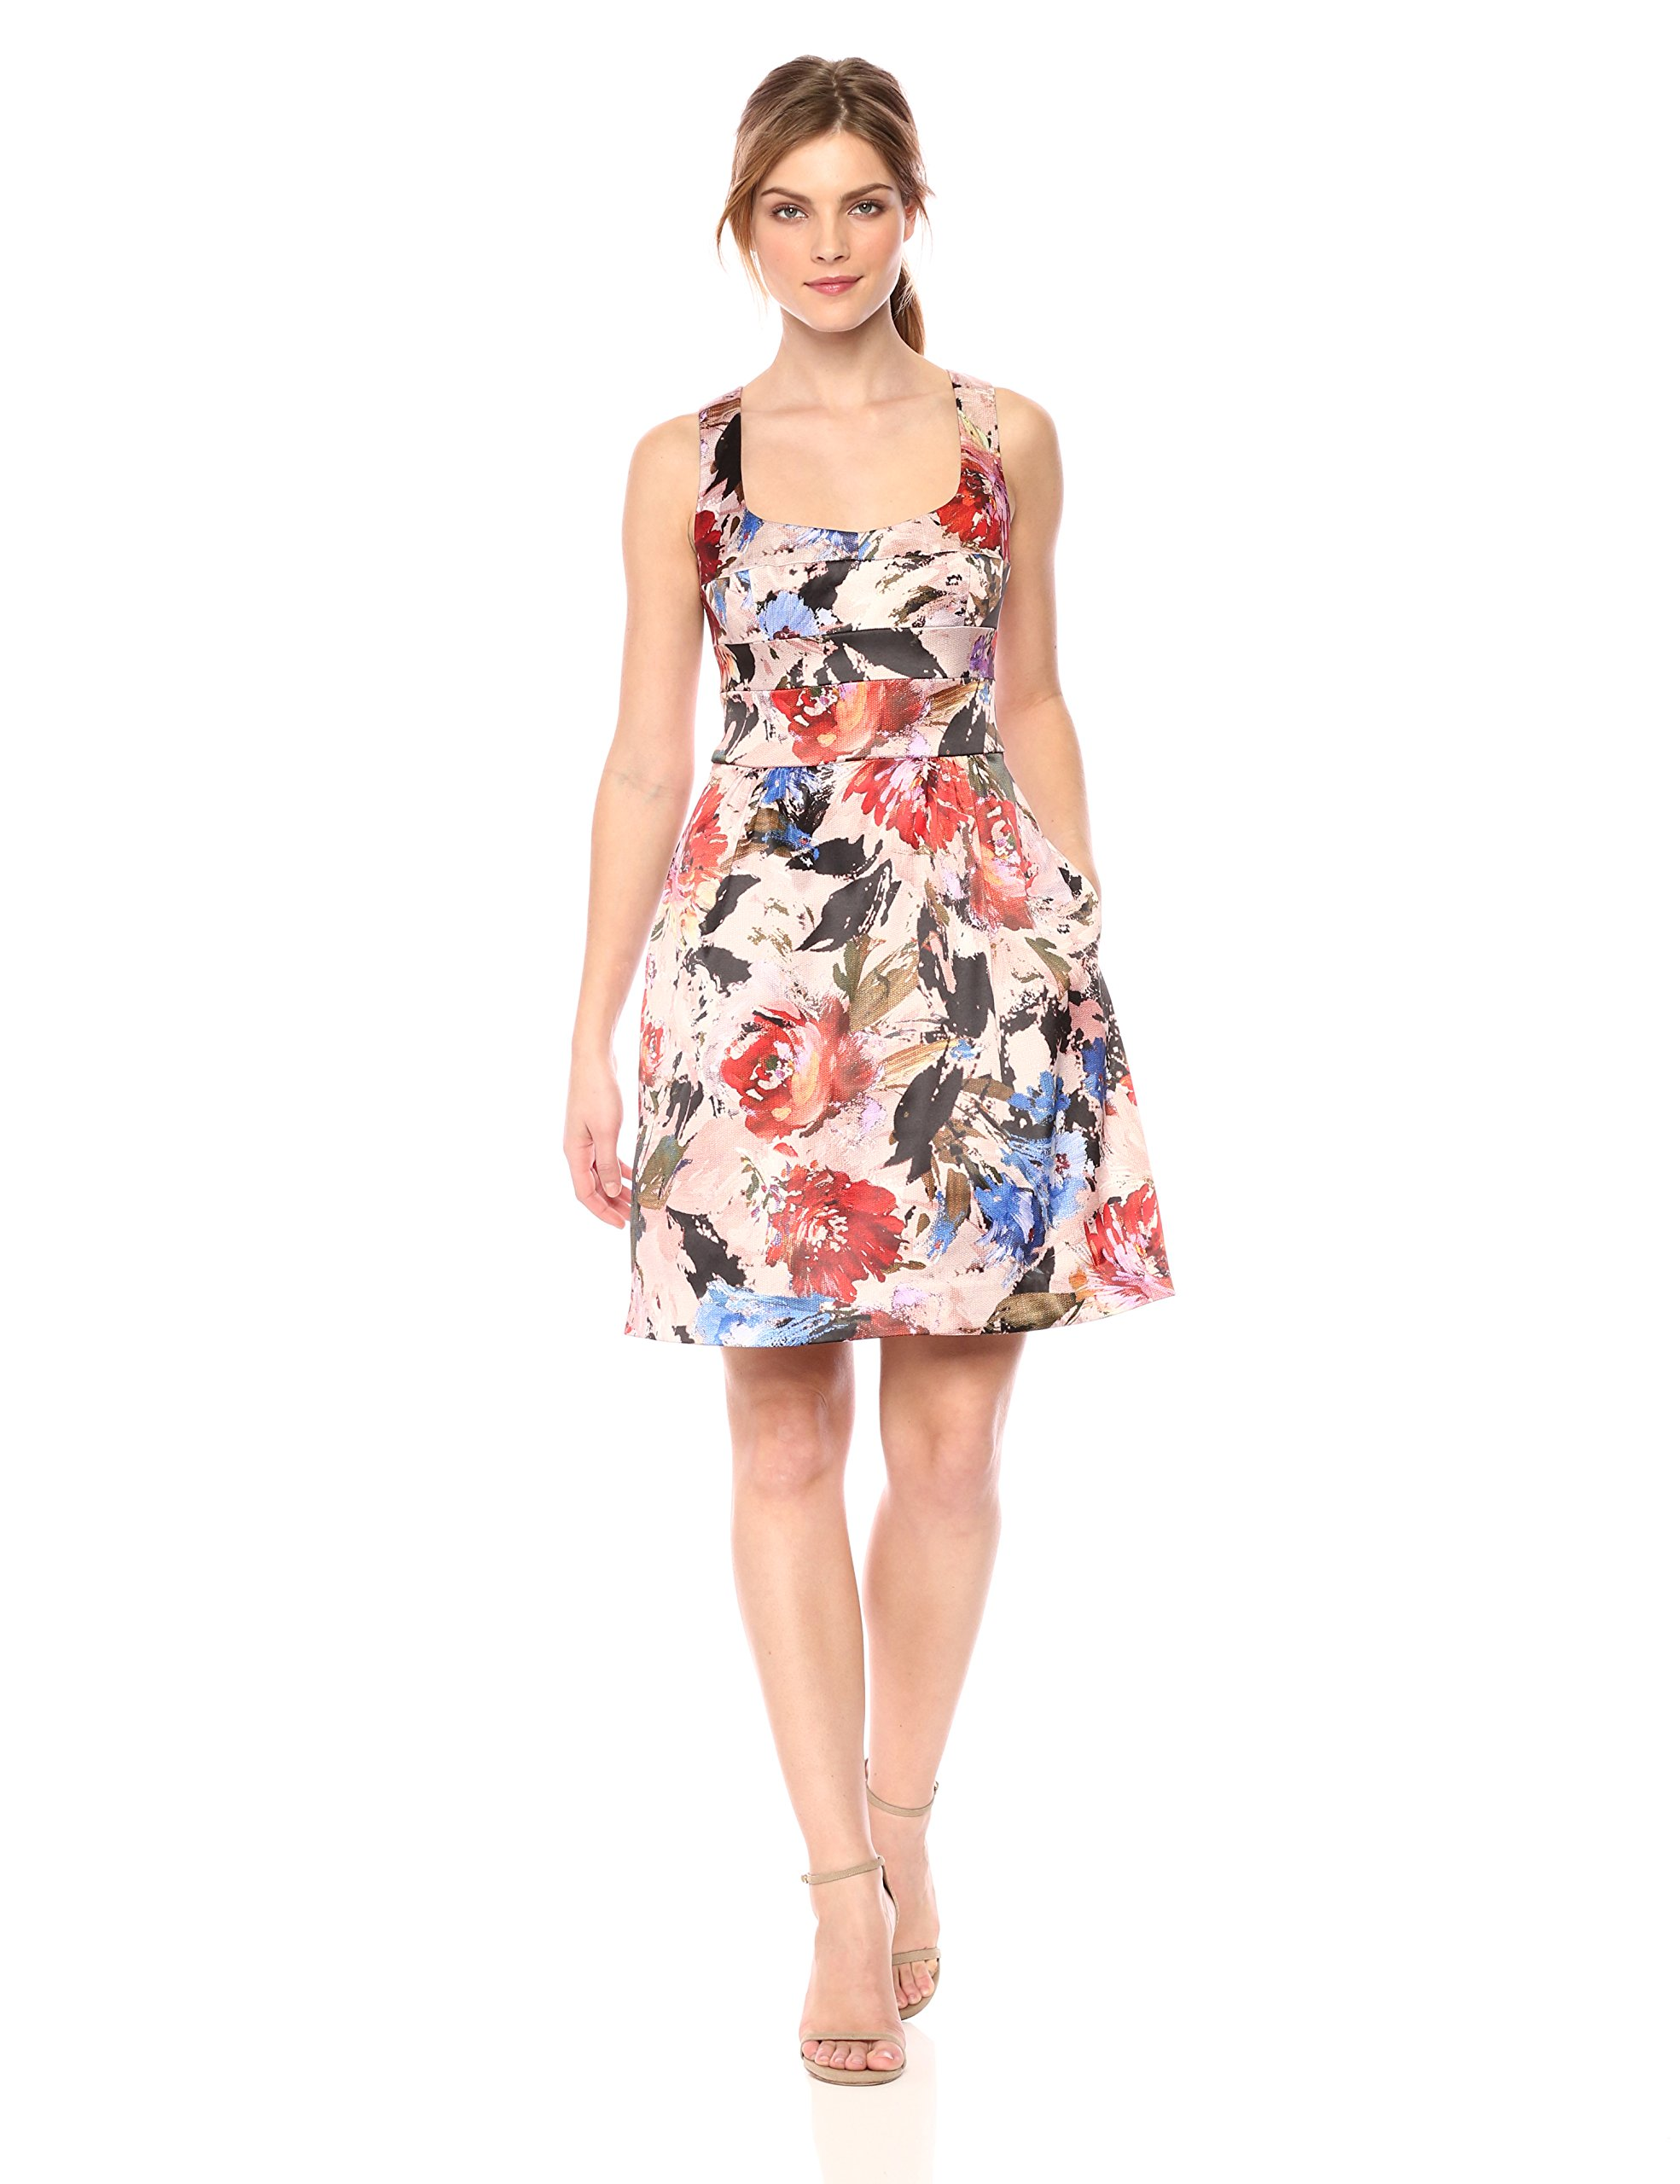 Nicole Miller New York Women's Printed Fit and Flare Cocktail Dress, Blush/Multi, 10